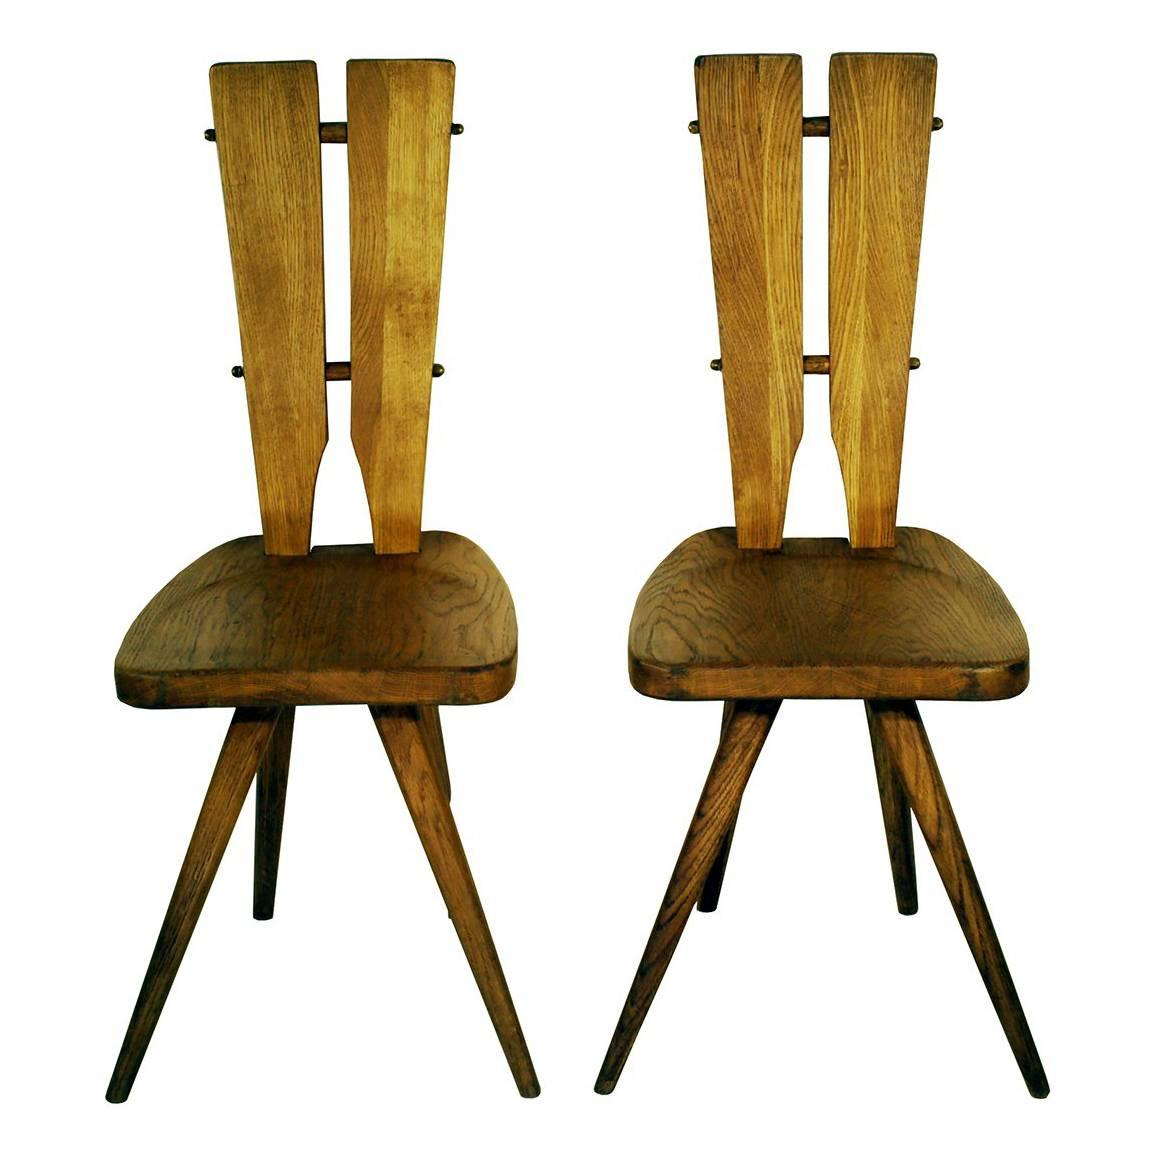 Pair of Side Chairs in the Manner of the Carlo Mollino Casa del Sole Chairs